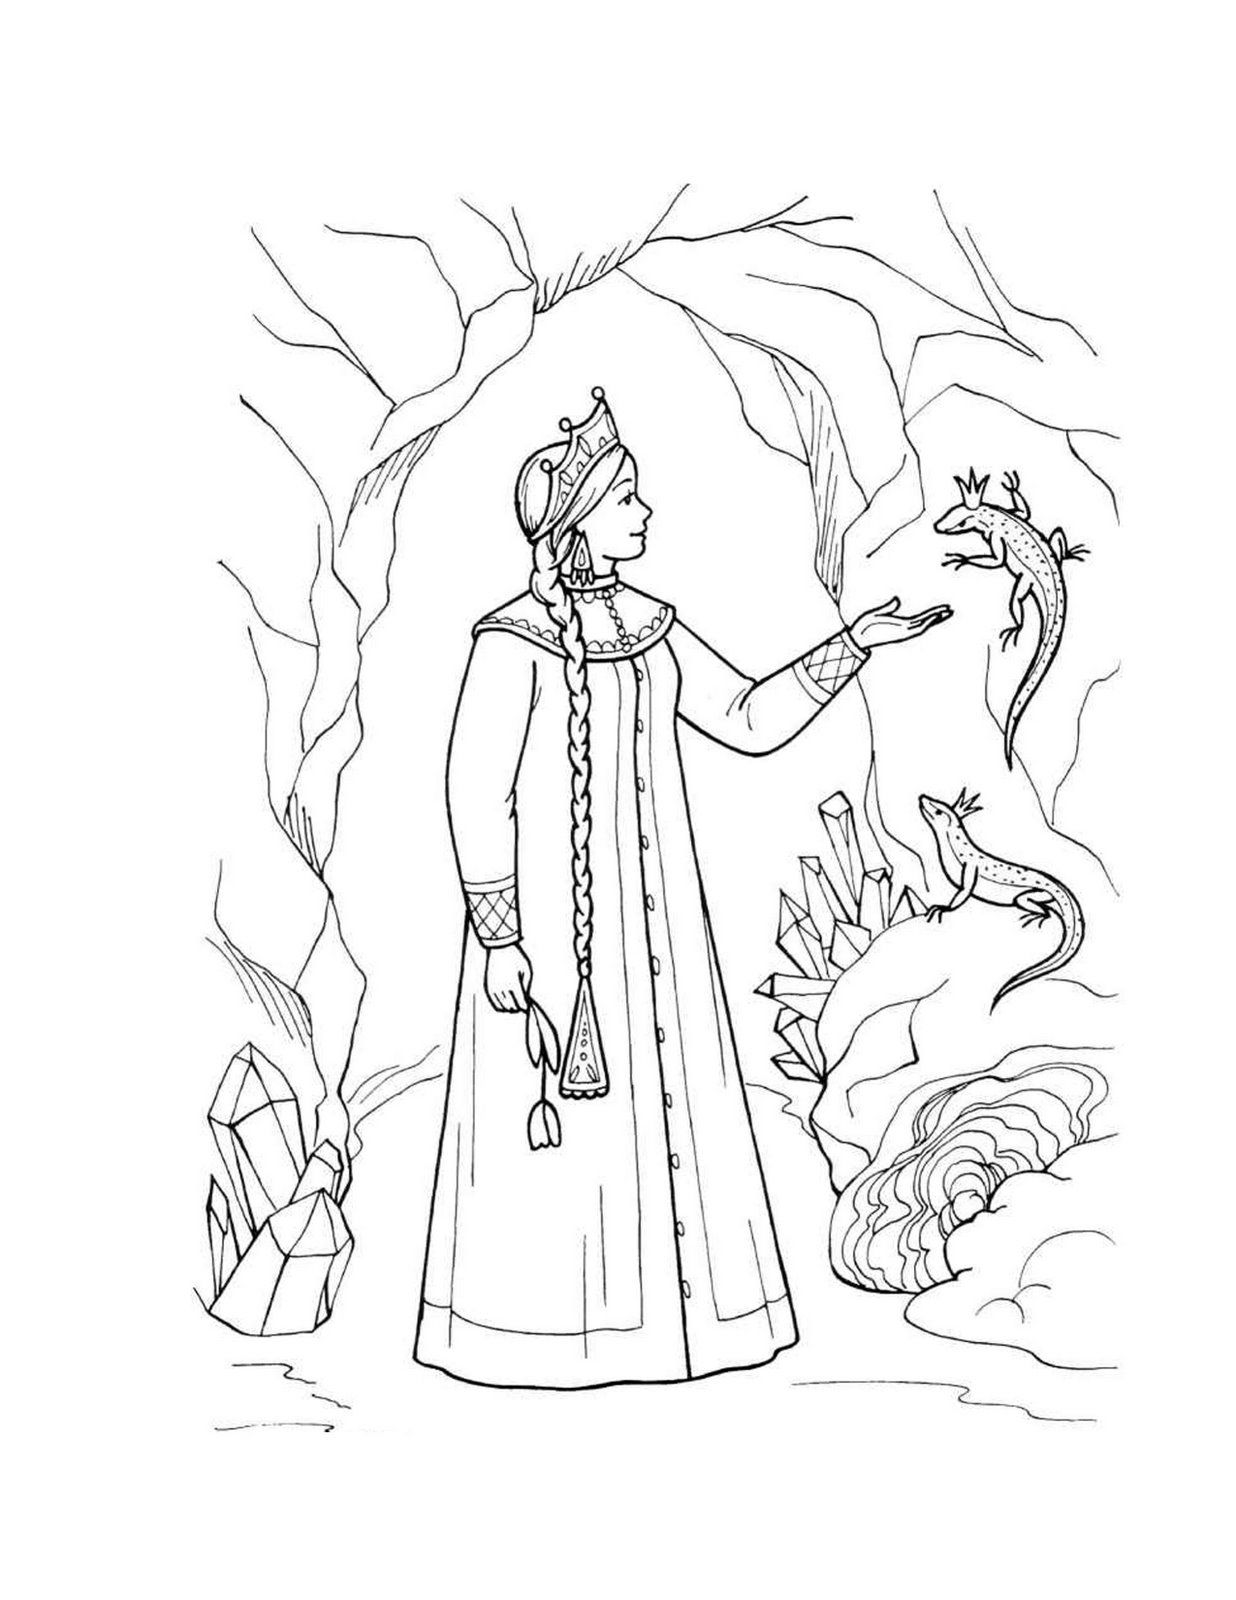 Princess Coloring Pages Princess Coloring Pages Assorted Princess Coloring Coloring Pages Princess Coloring Pages